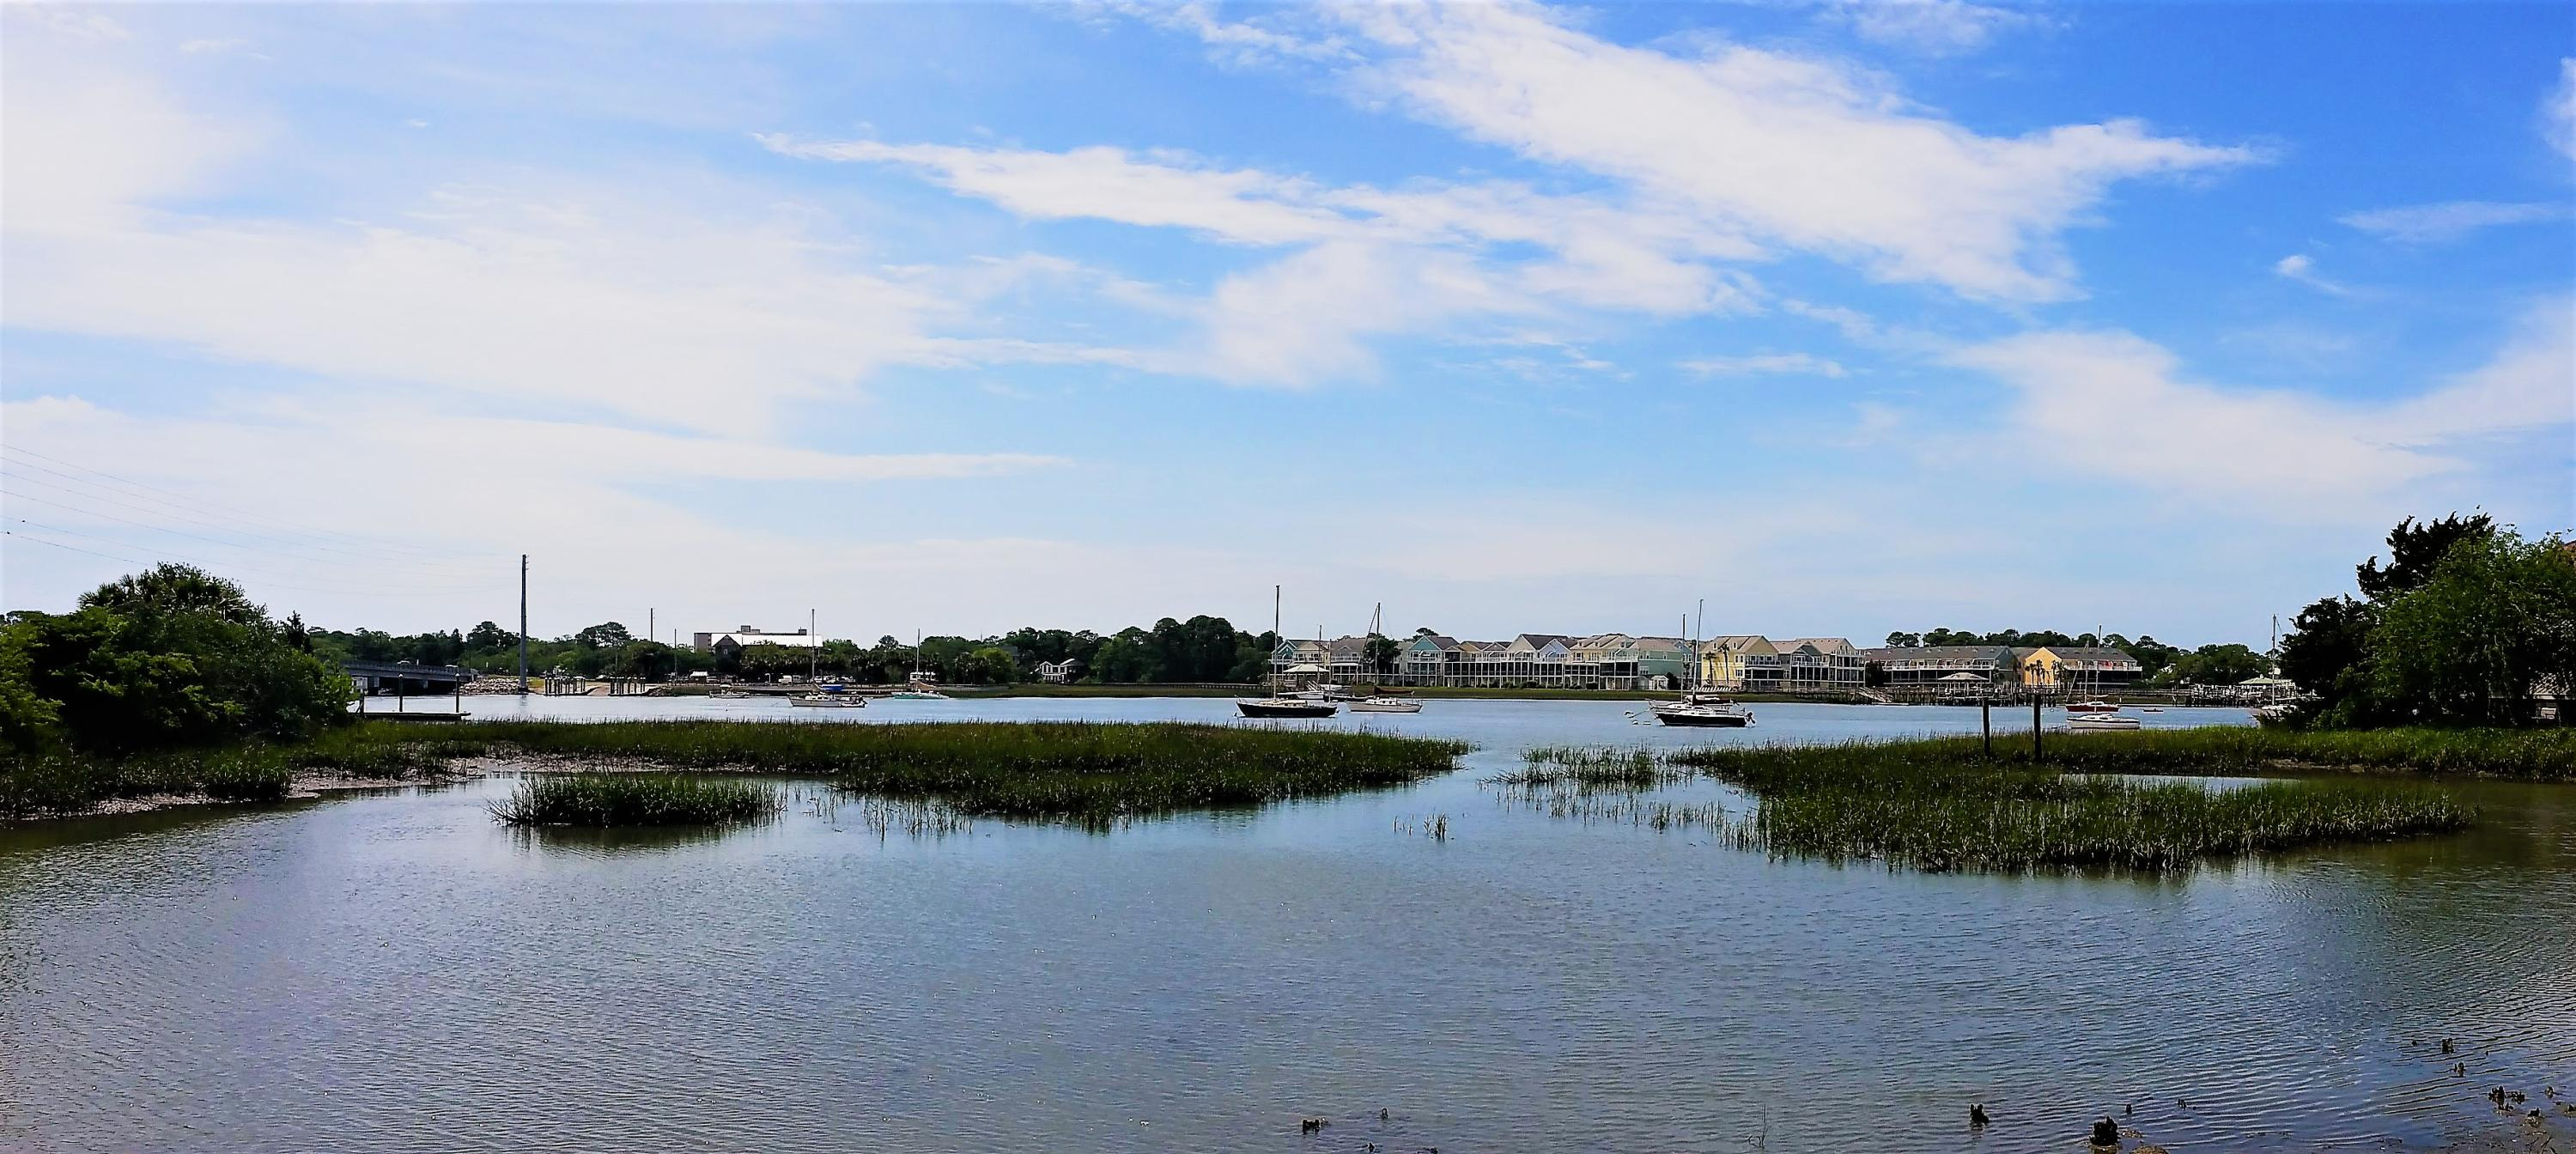 Mariners Cay Homes For Sale - 1004 Mariners Cay, Folly Beach, SC - 40